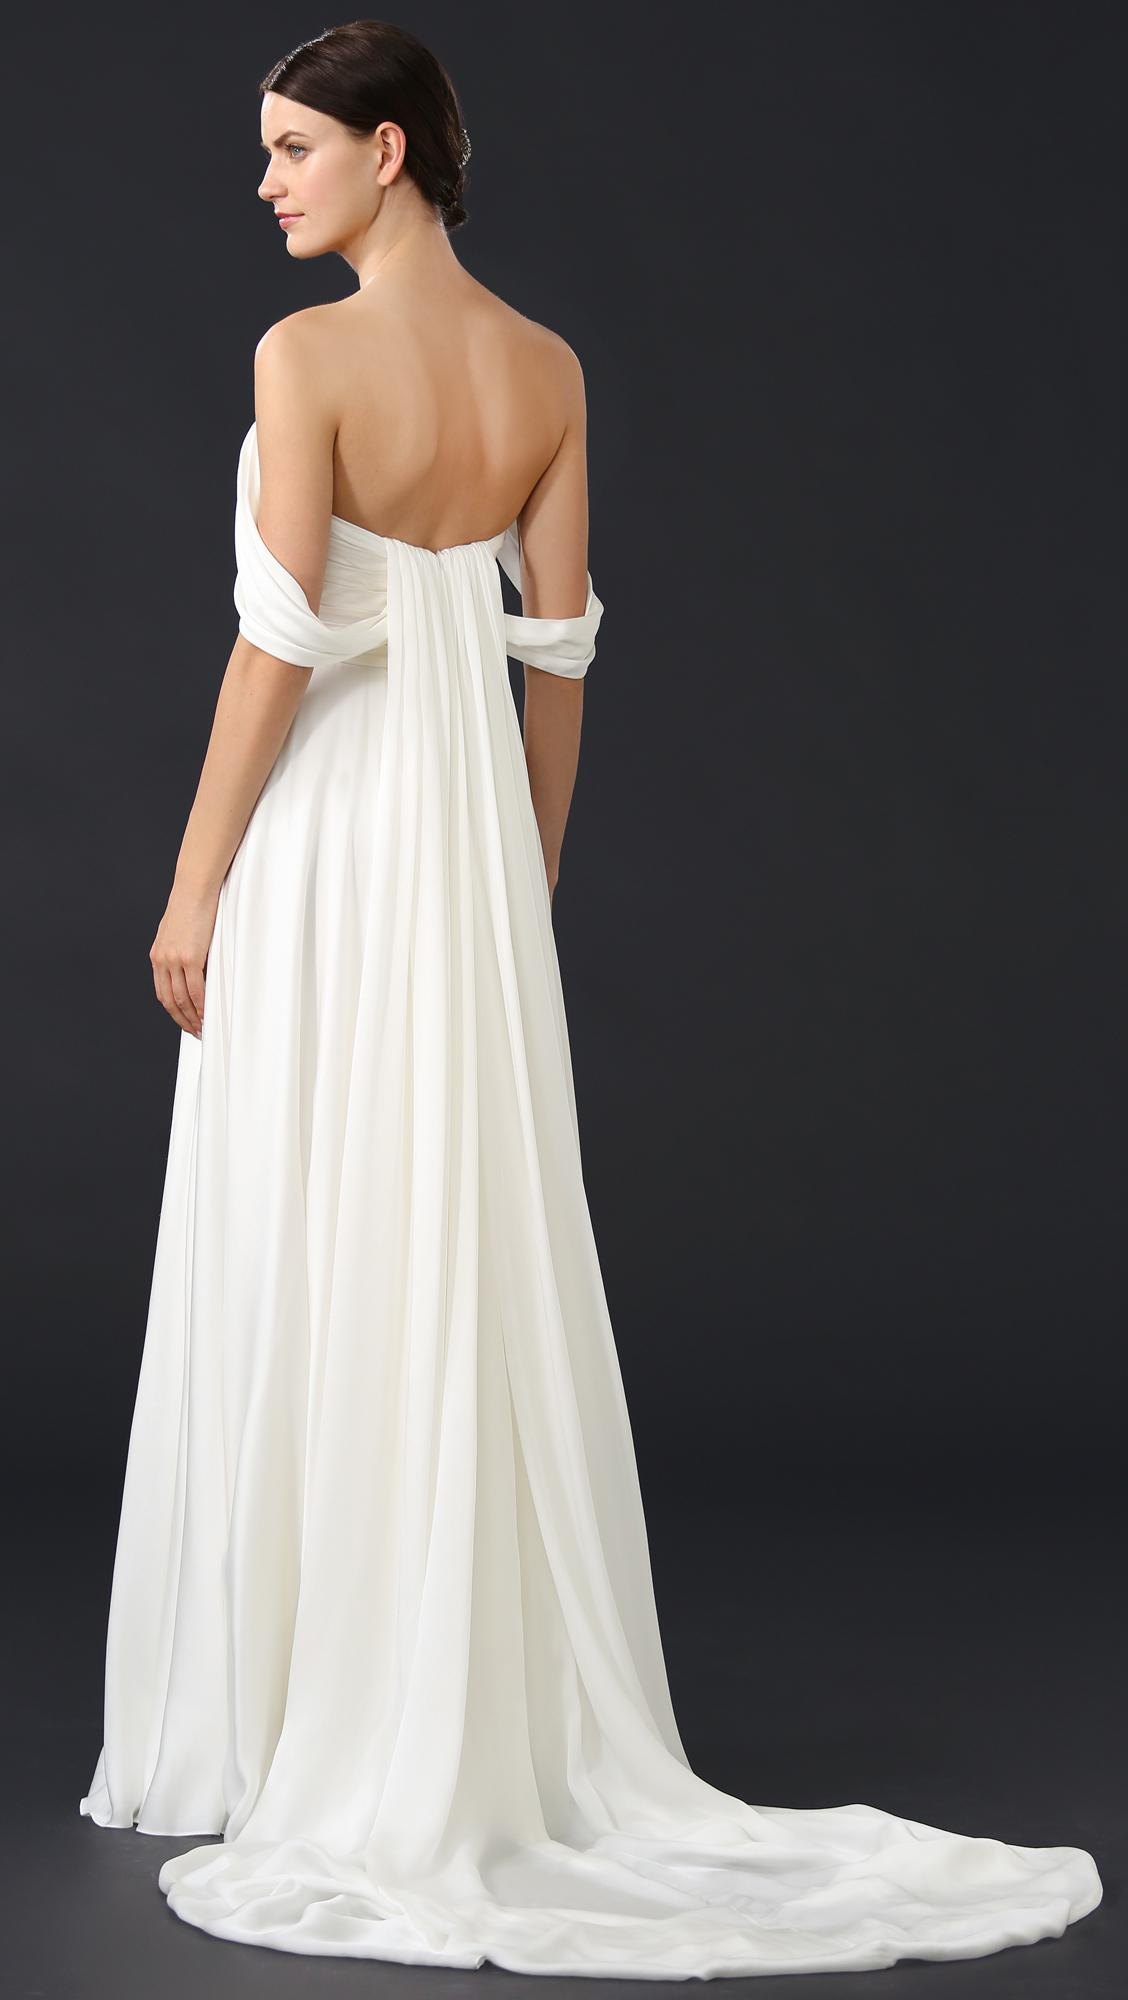 Lyst - Theia Delphine Off Shoulder Gown in White